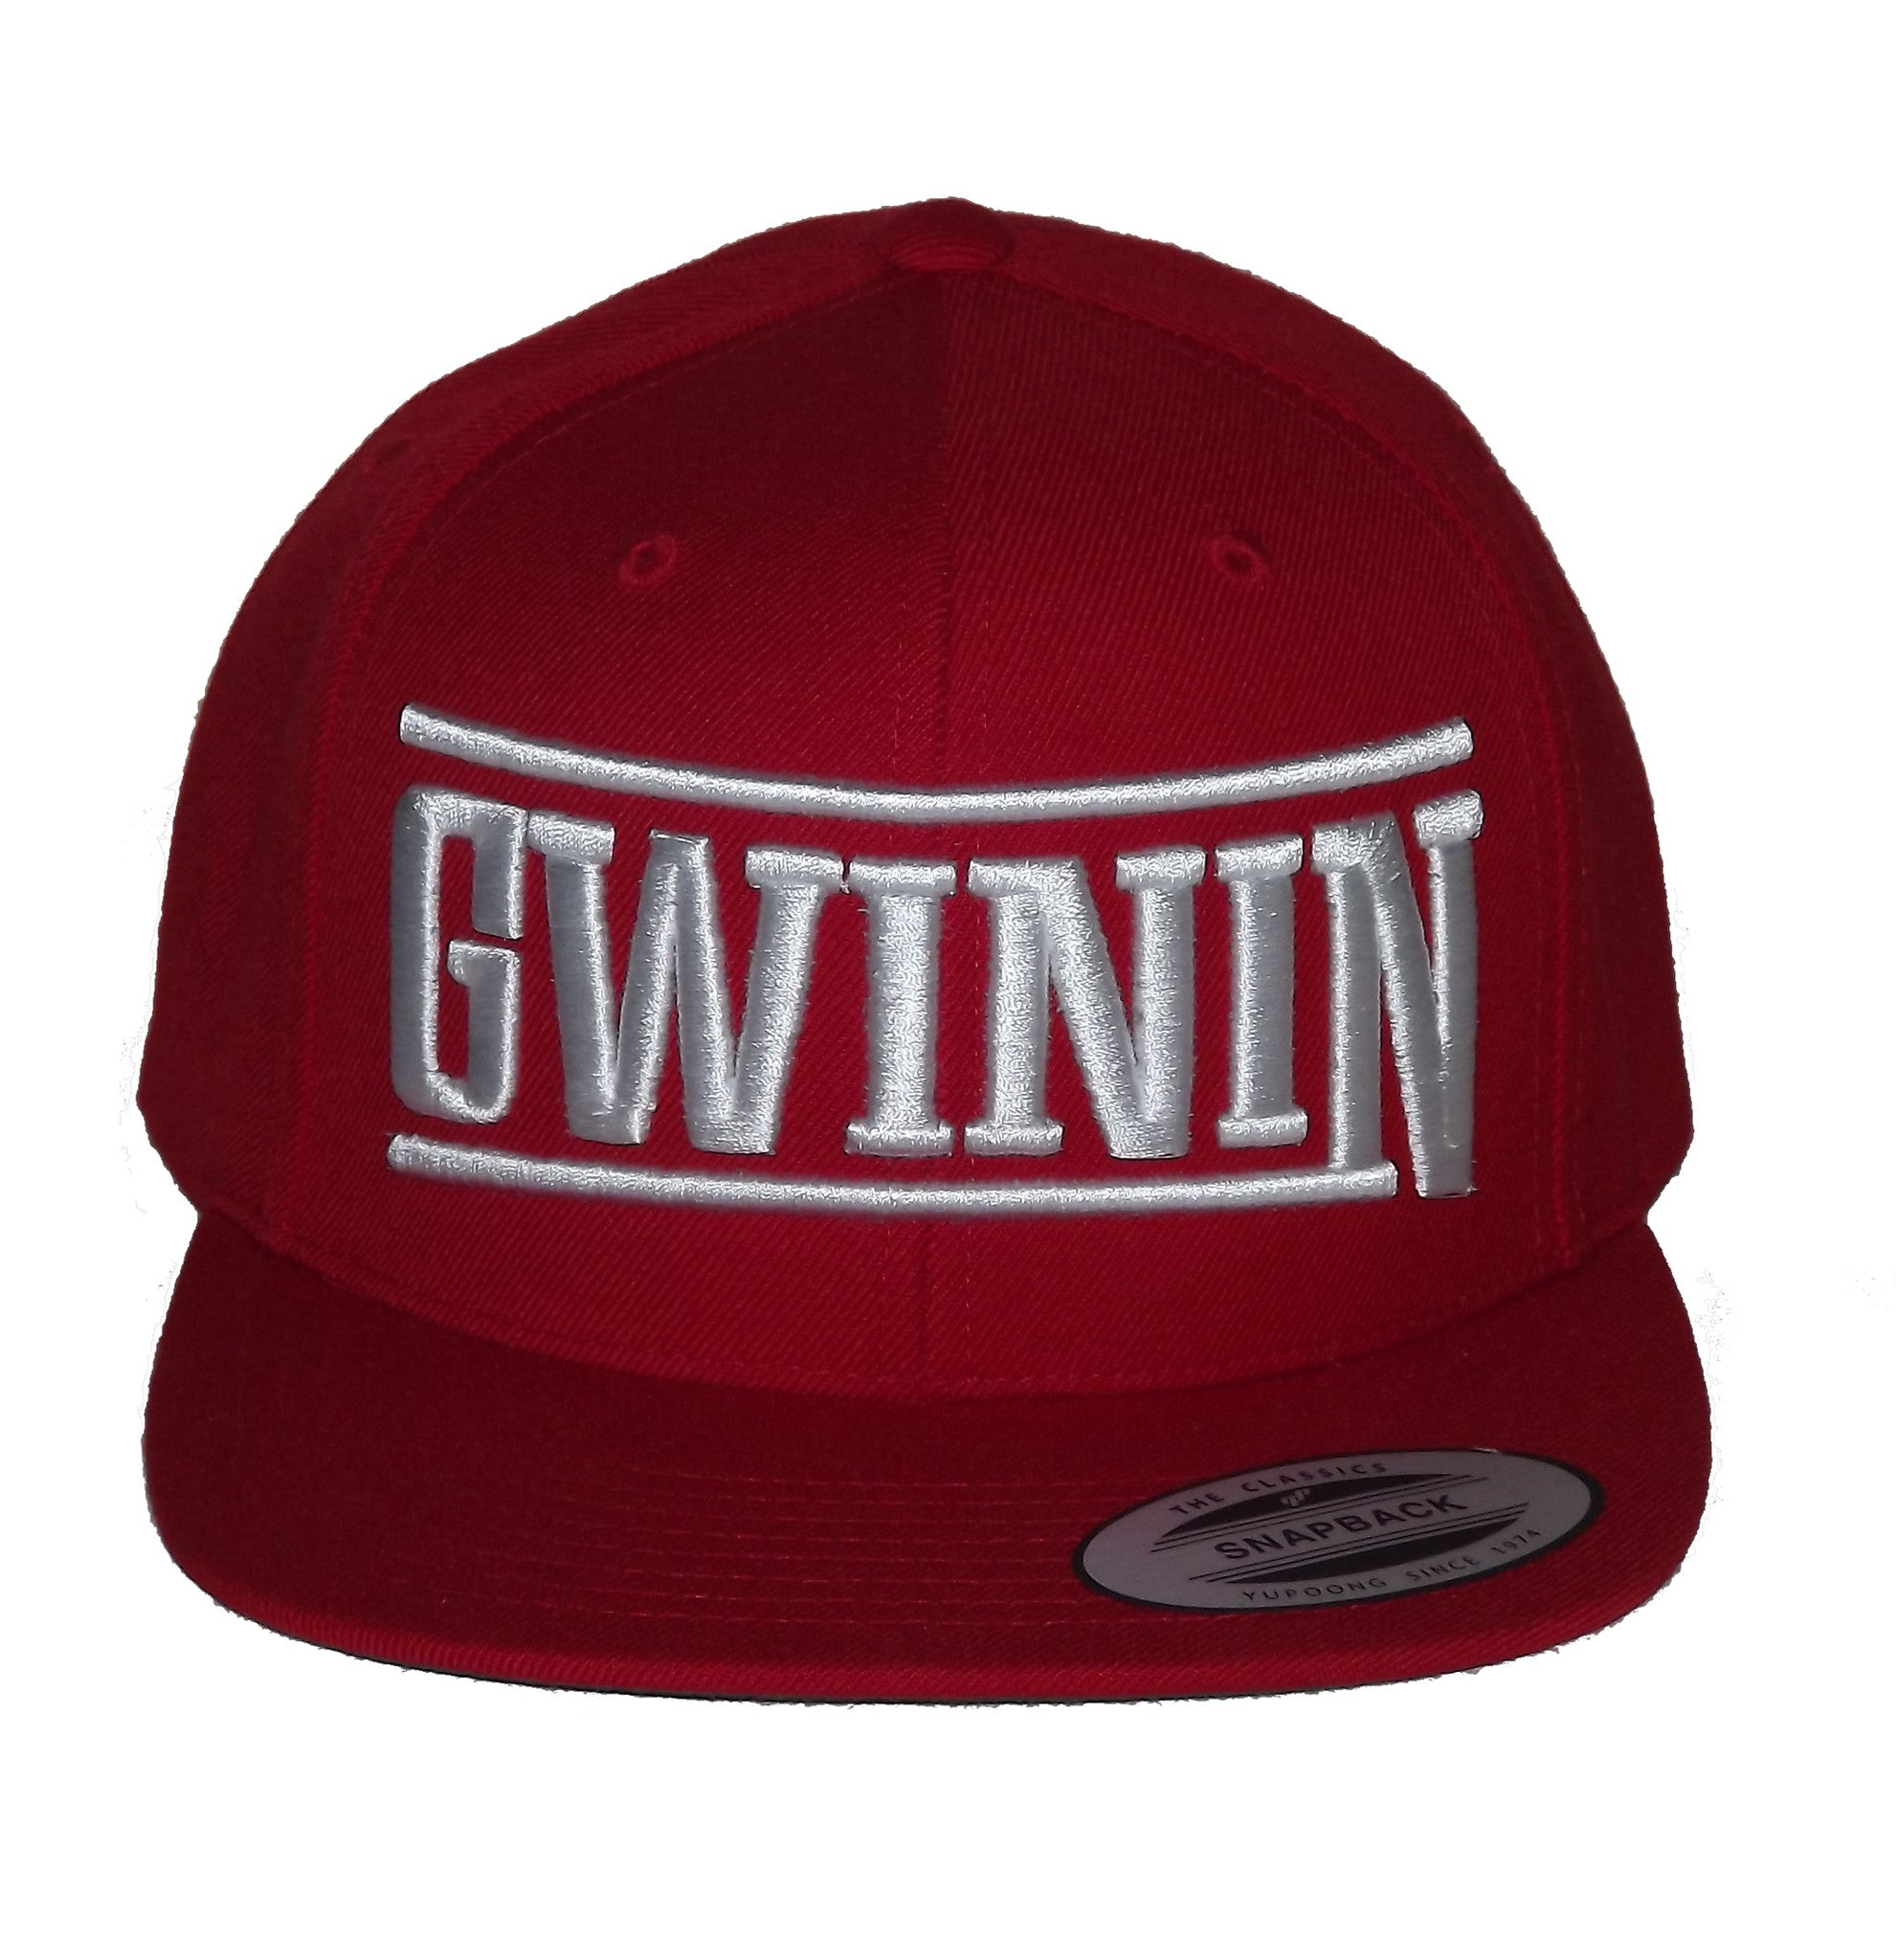 Red and White Classic Gwinin Snapback